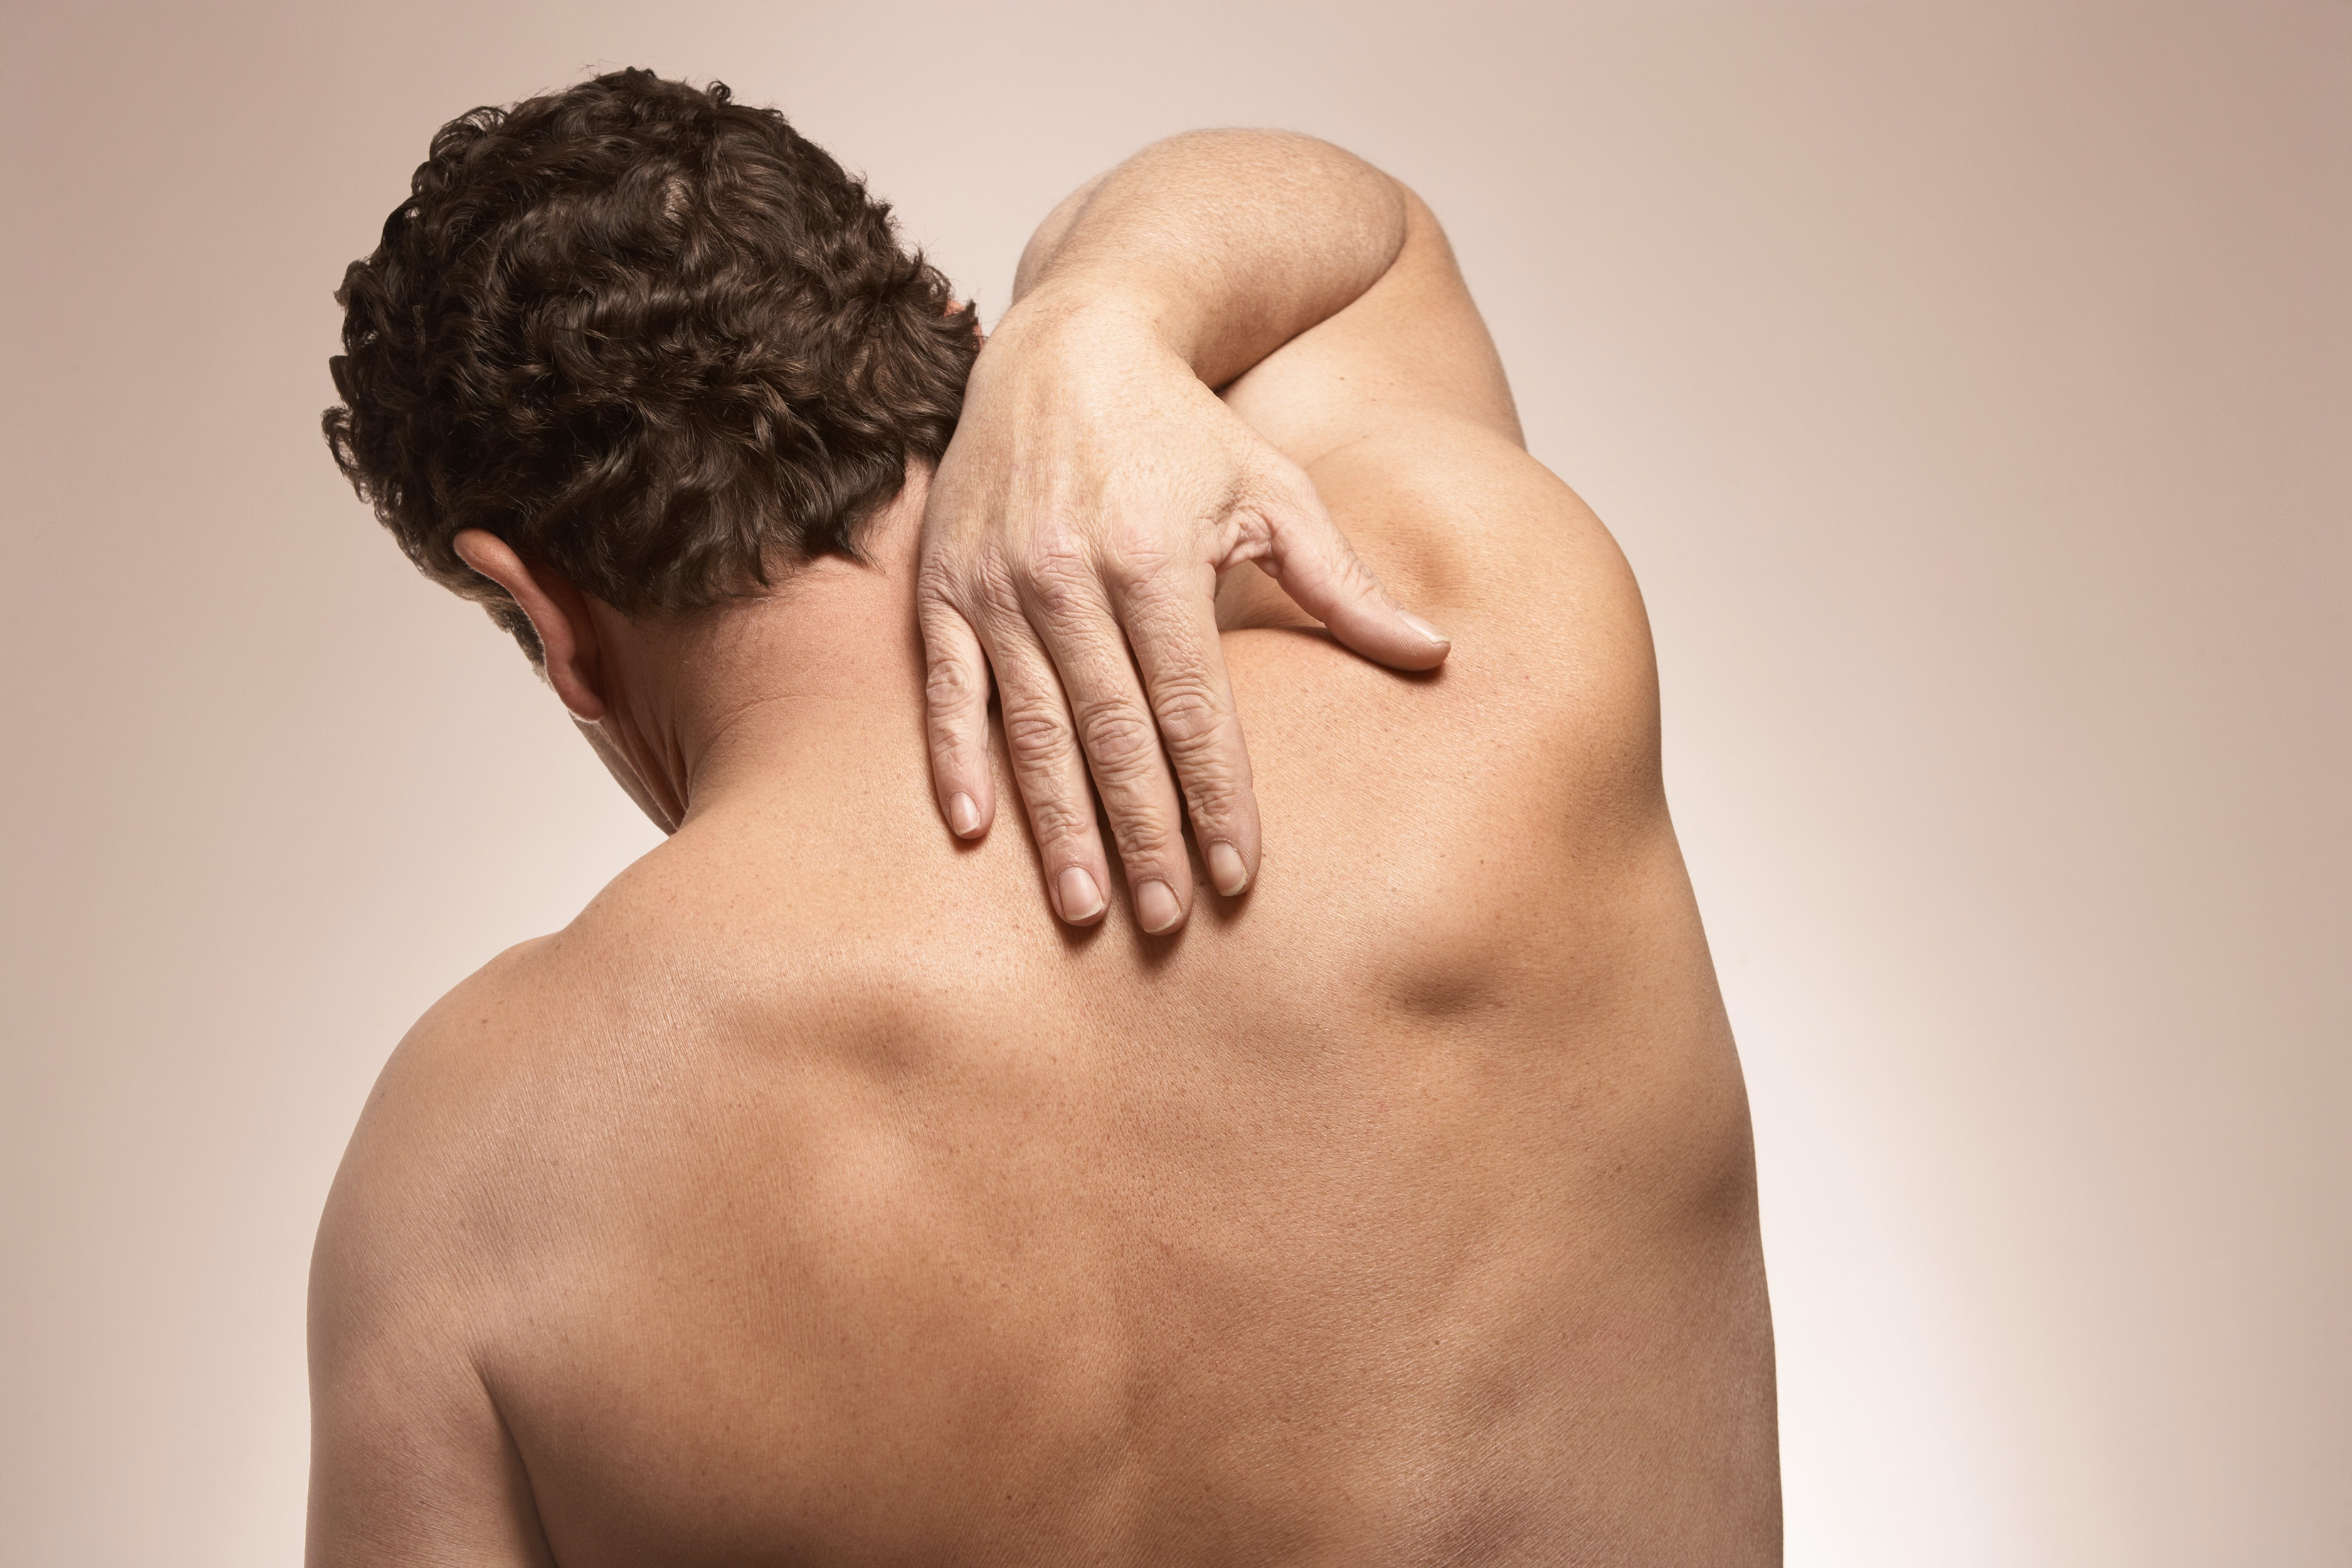 An image depicting a person suffering from mild shoulder pain symptoms